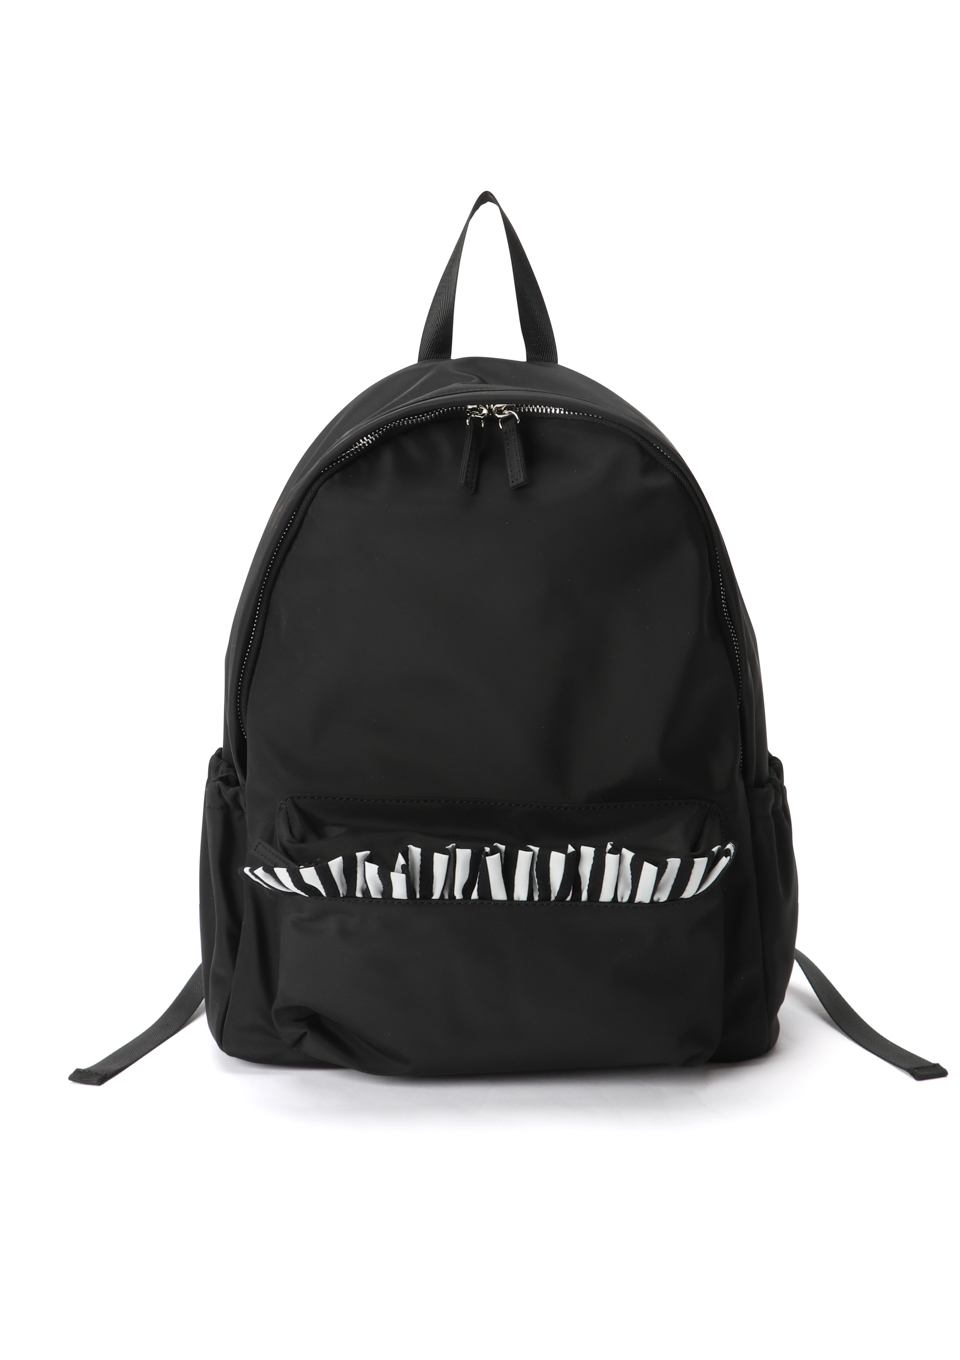 CITY POLLY BACKPACK